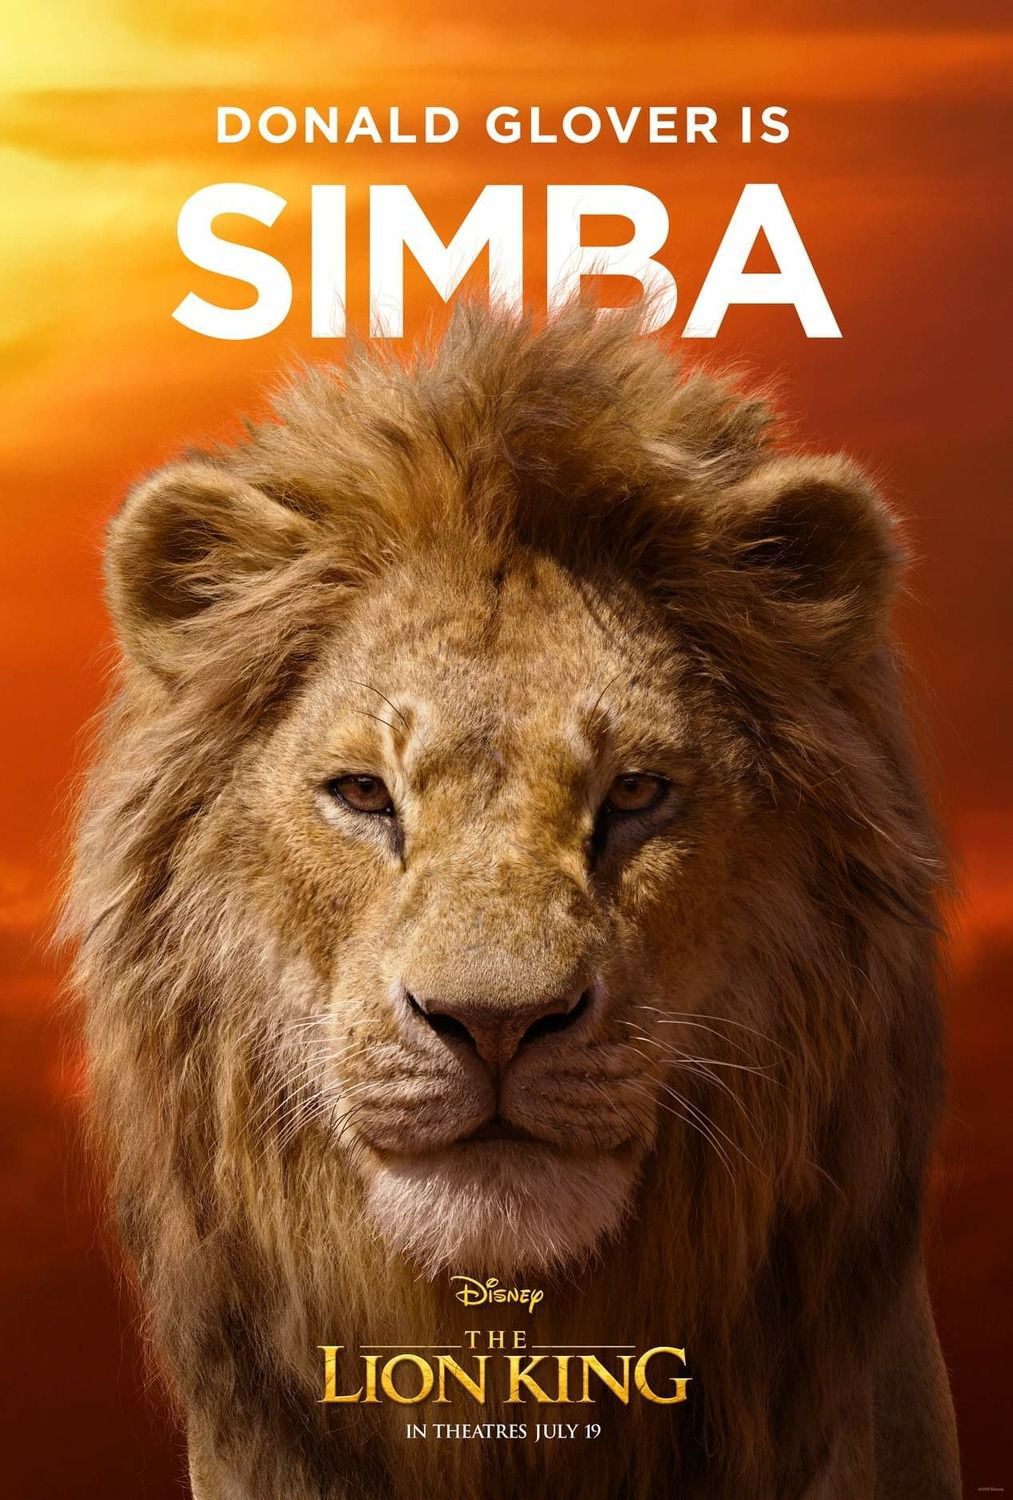 Donald Glover is Simba